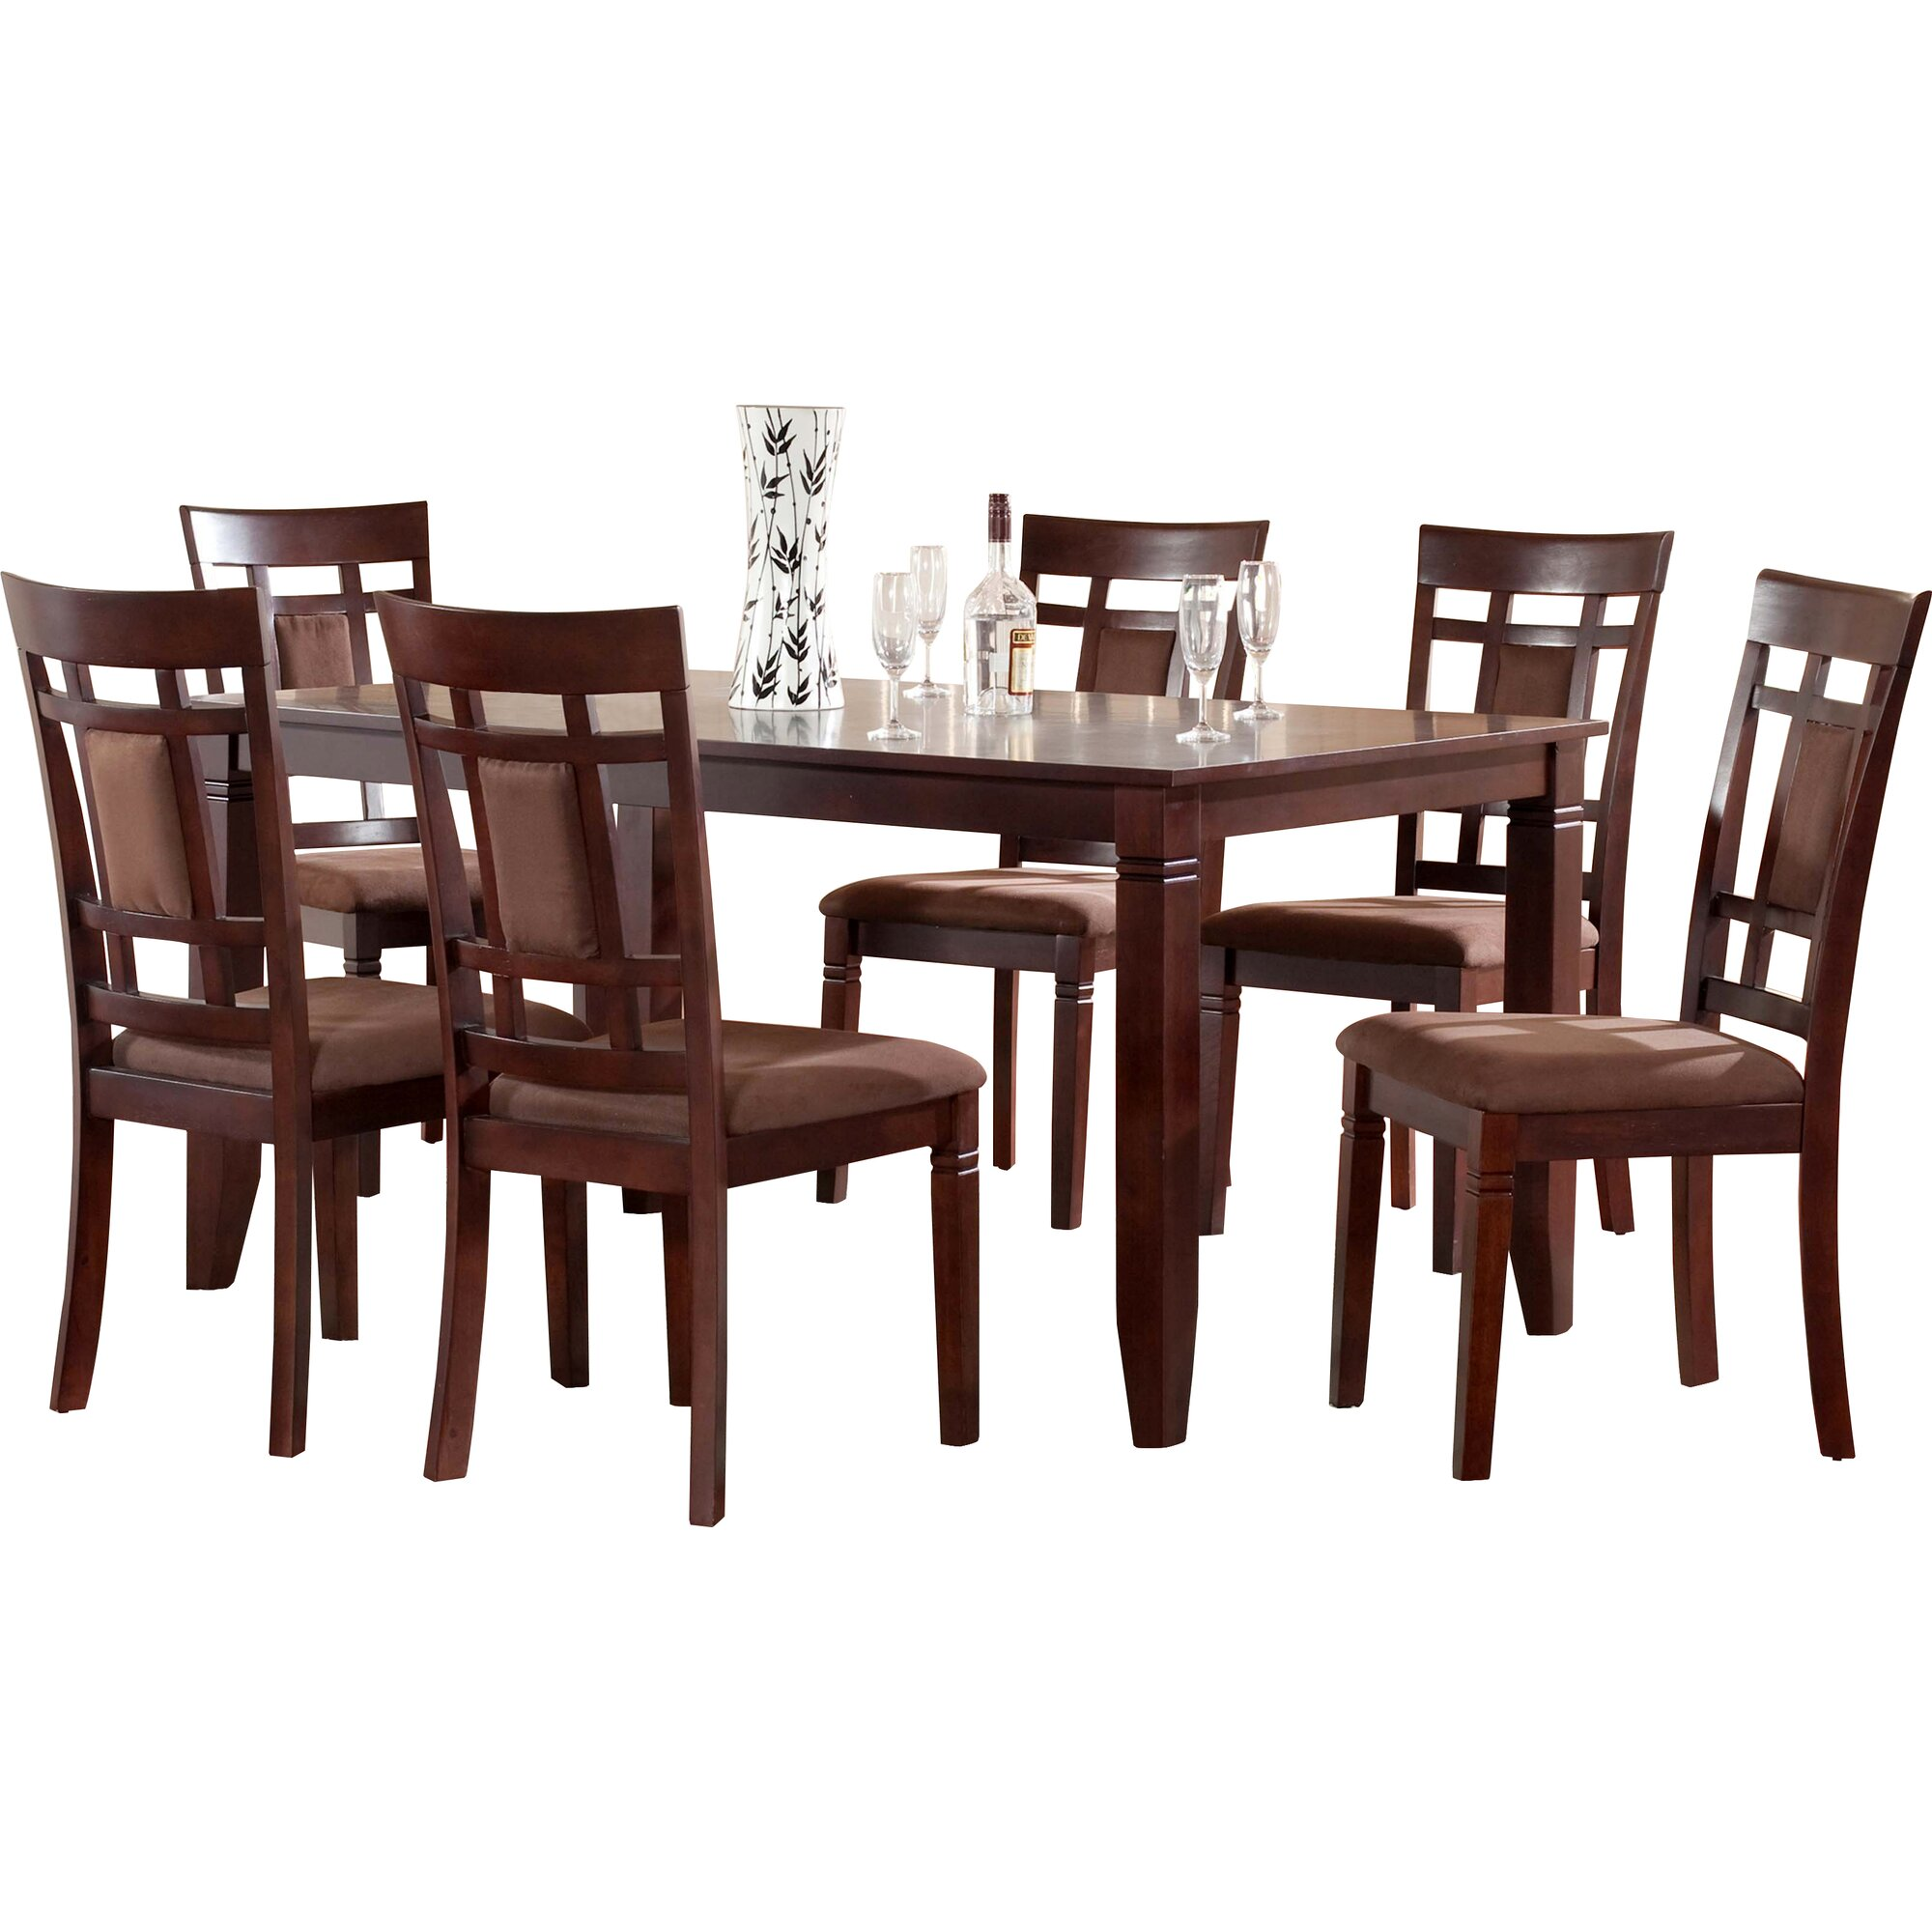 World menagerie ighli 7 piece dining set reviews for 7 piece dining set